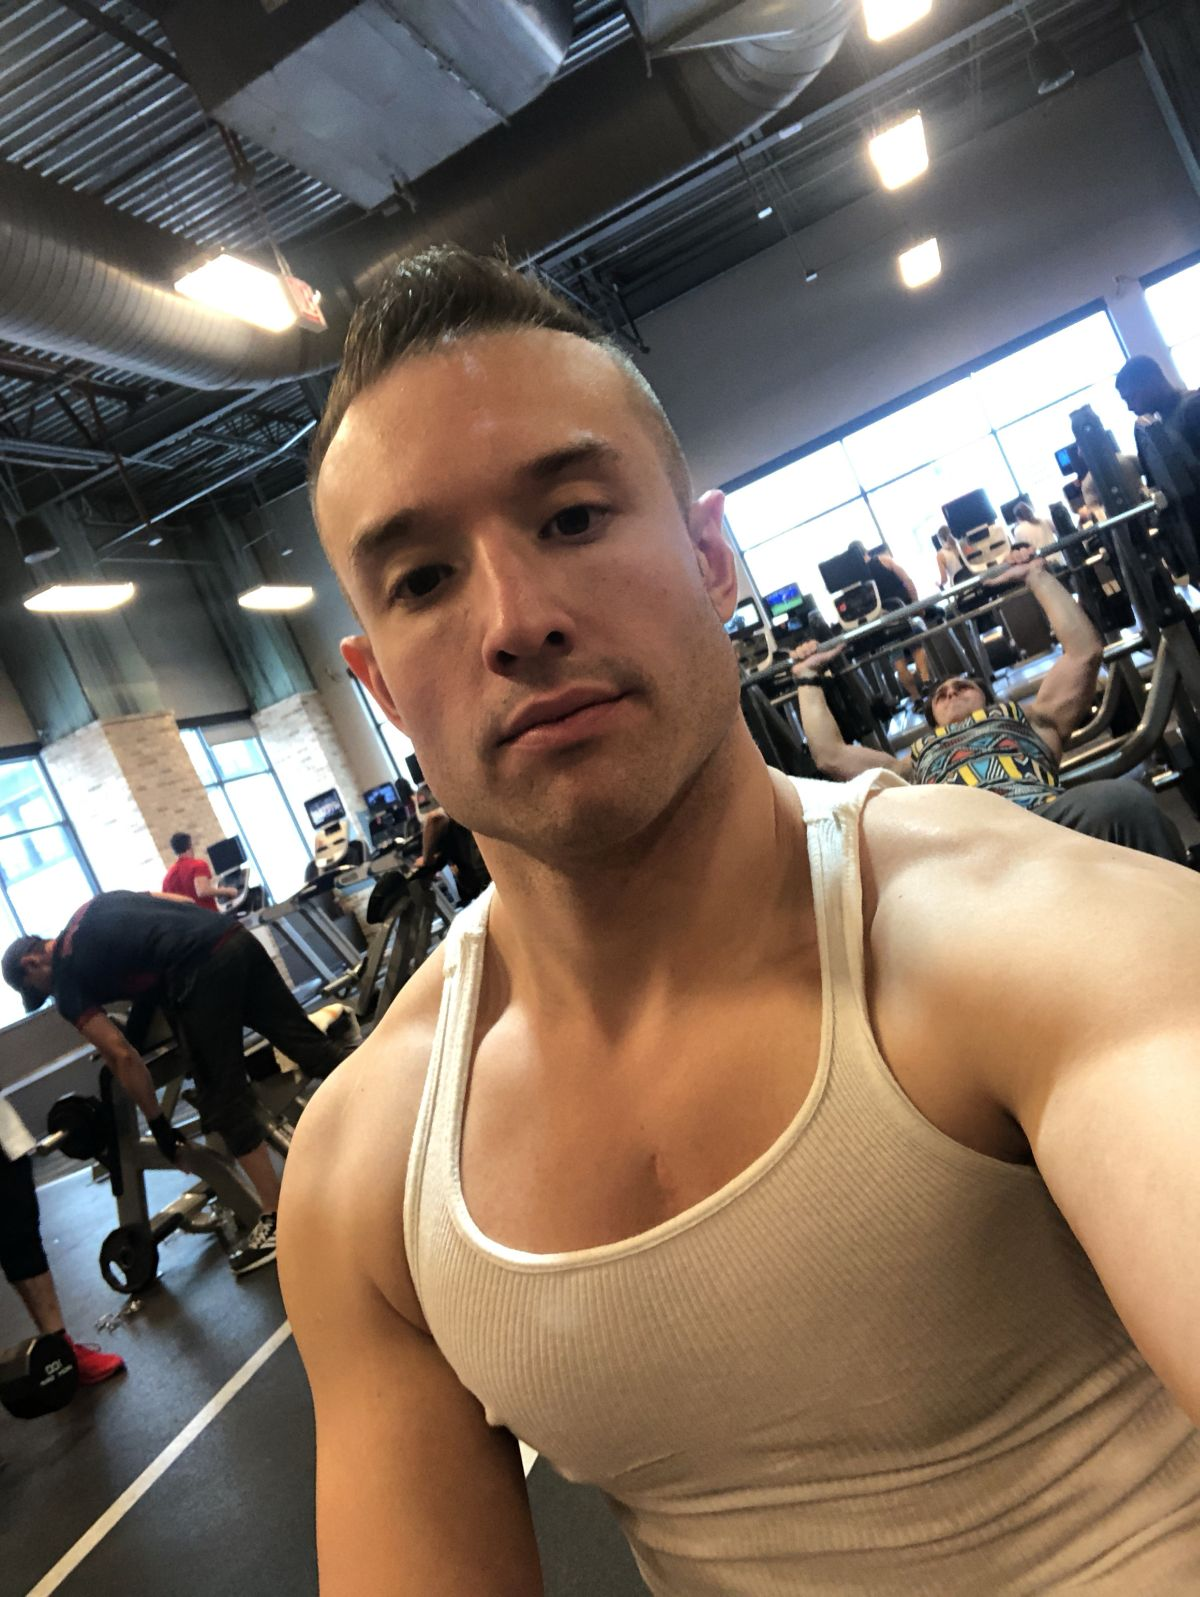 Scout Walker photos and videos onlyfans leaked